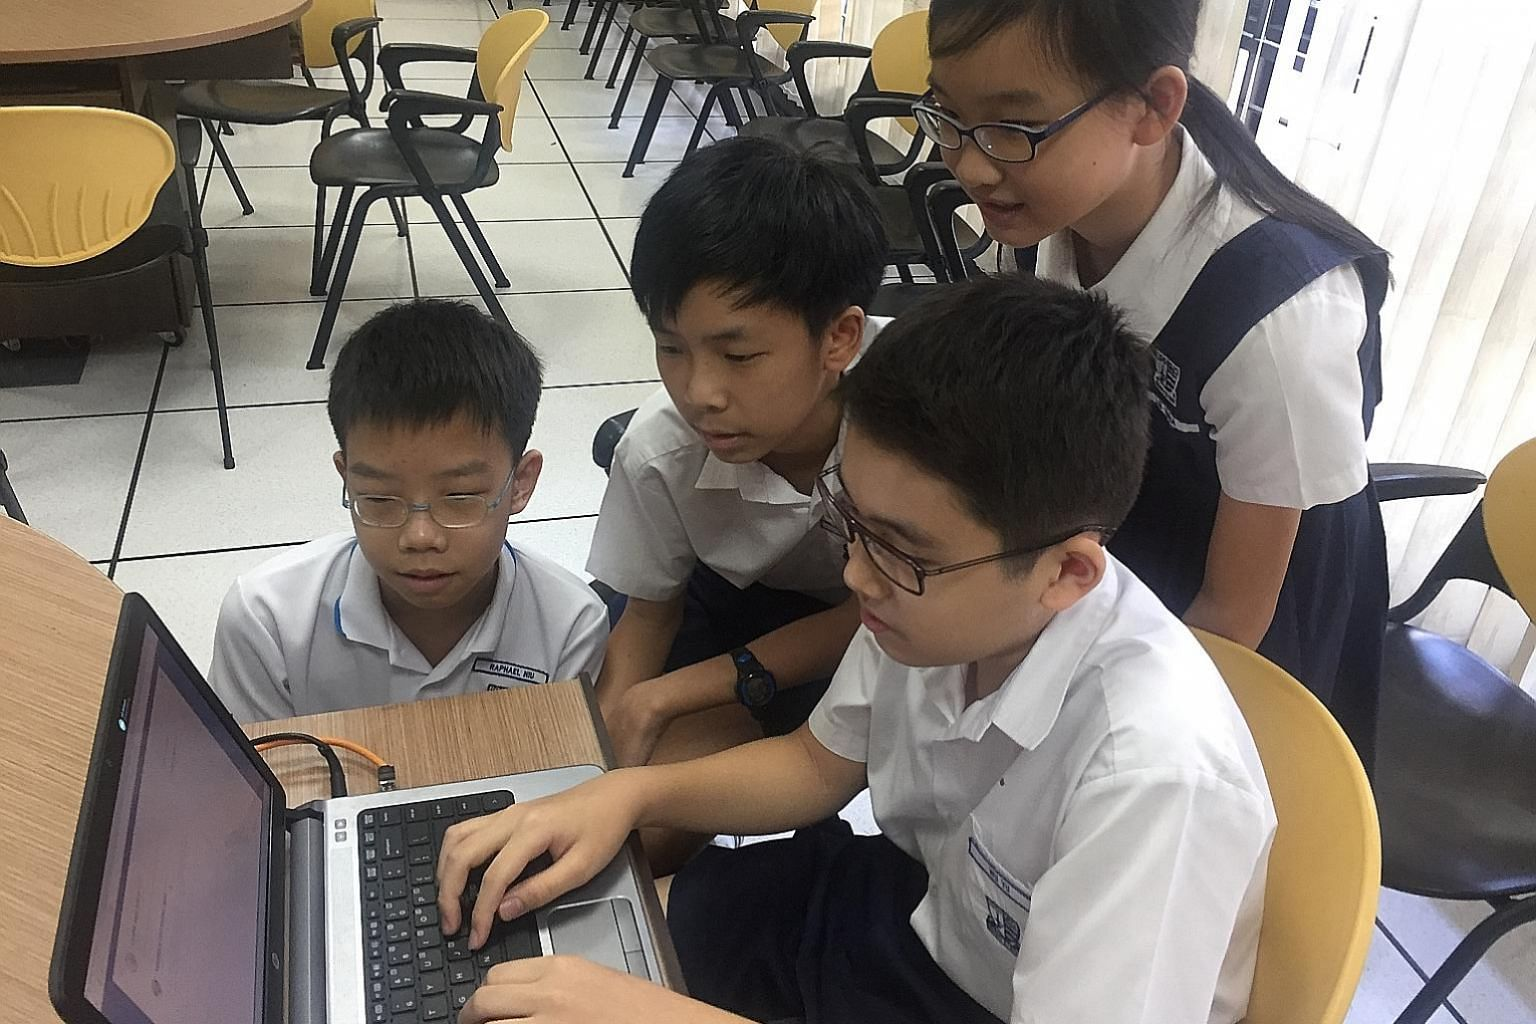 Taking part in the C@RS programme are (from left) Primary 6 pupils Raphael Niu Zi Yuan, Evan Lim Hong Jun, Wu Yu and Liu Yihua, all aged 12.